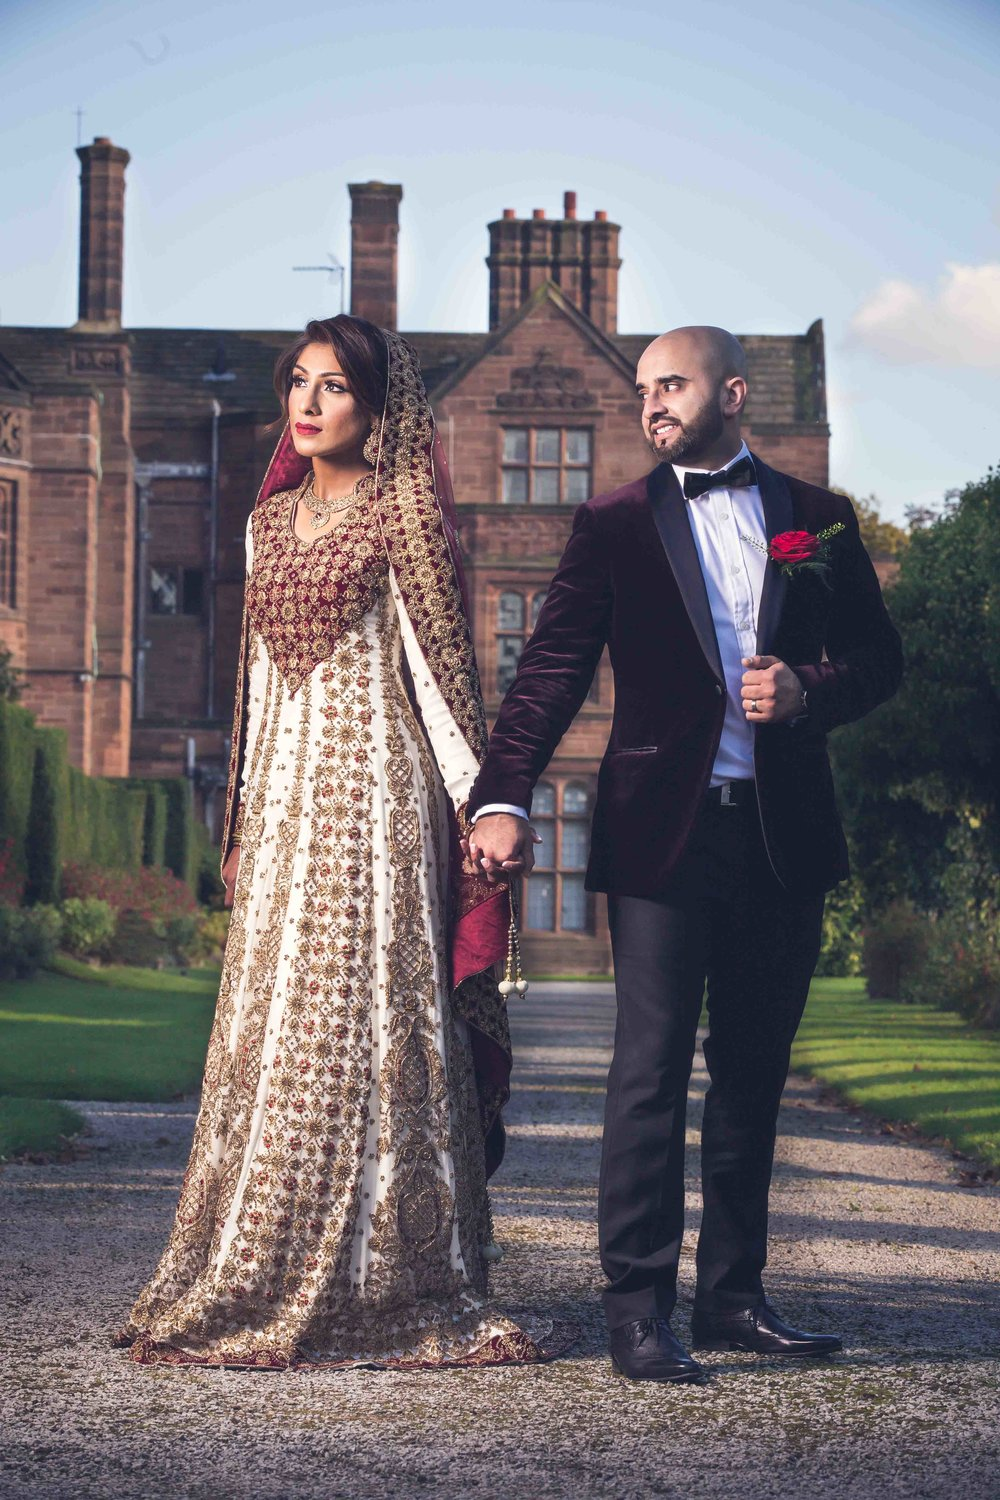 Asian Wedding Photographer Opu Sultan Photography Lyme Park Scotland Edinburgh Glasgow London Manchester Liverpool Birmingham Wedding Photos prewed shoot Azman & Saira Blog-88.jpg